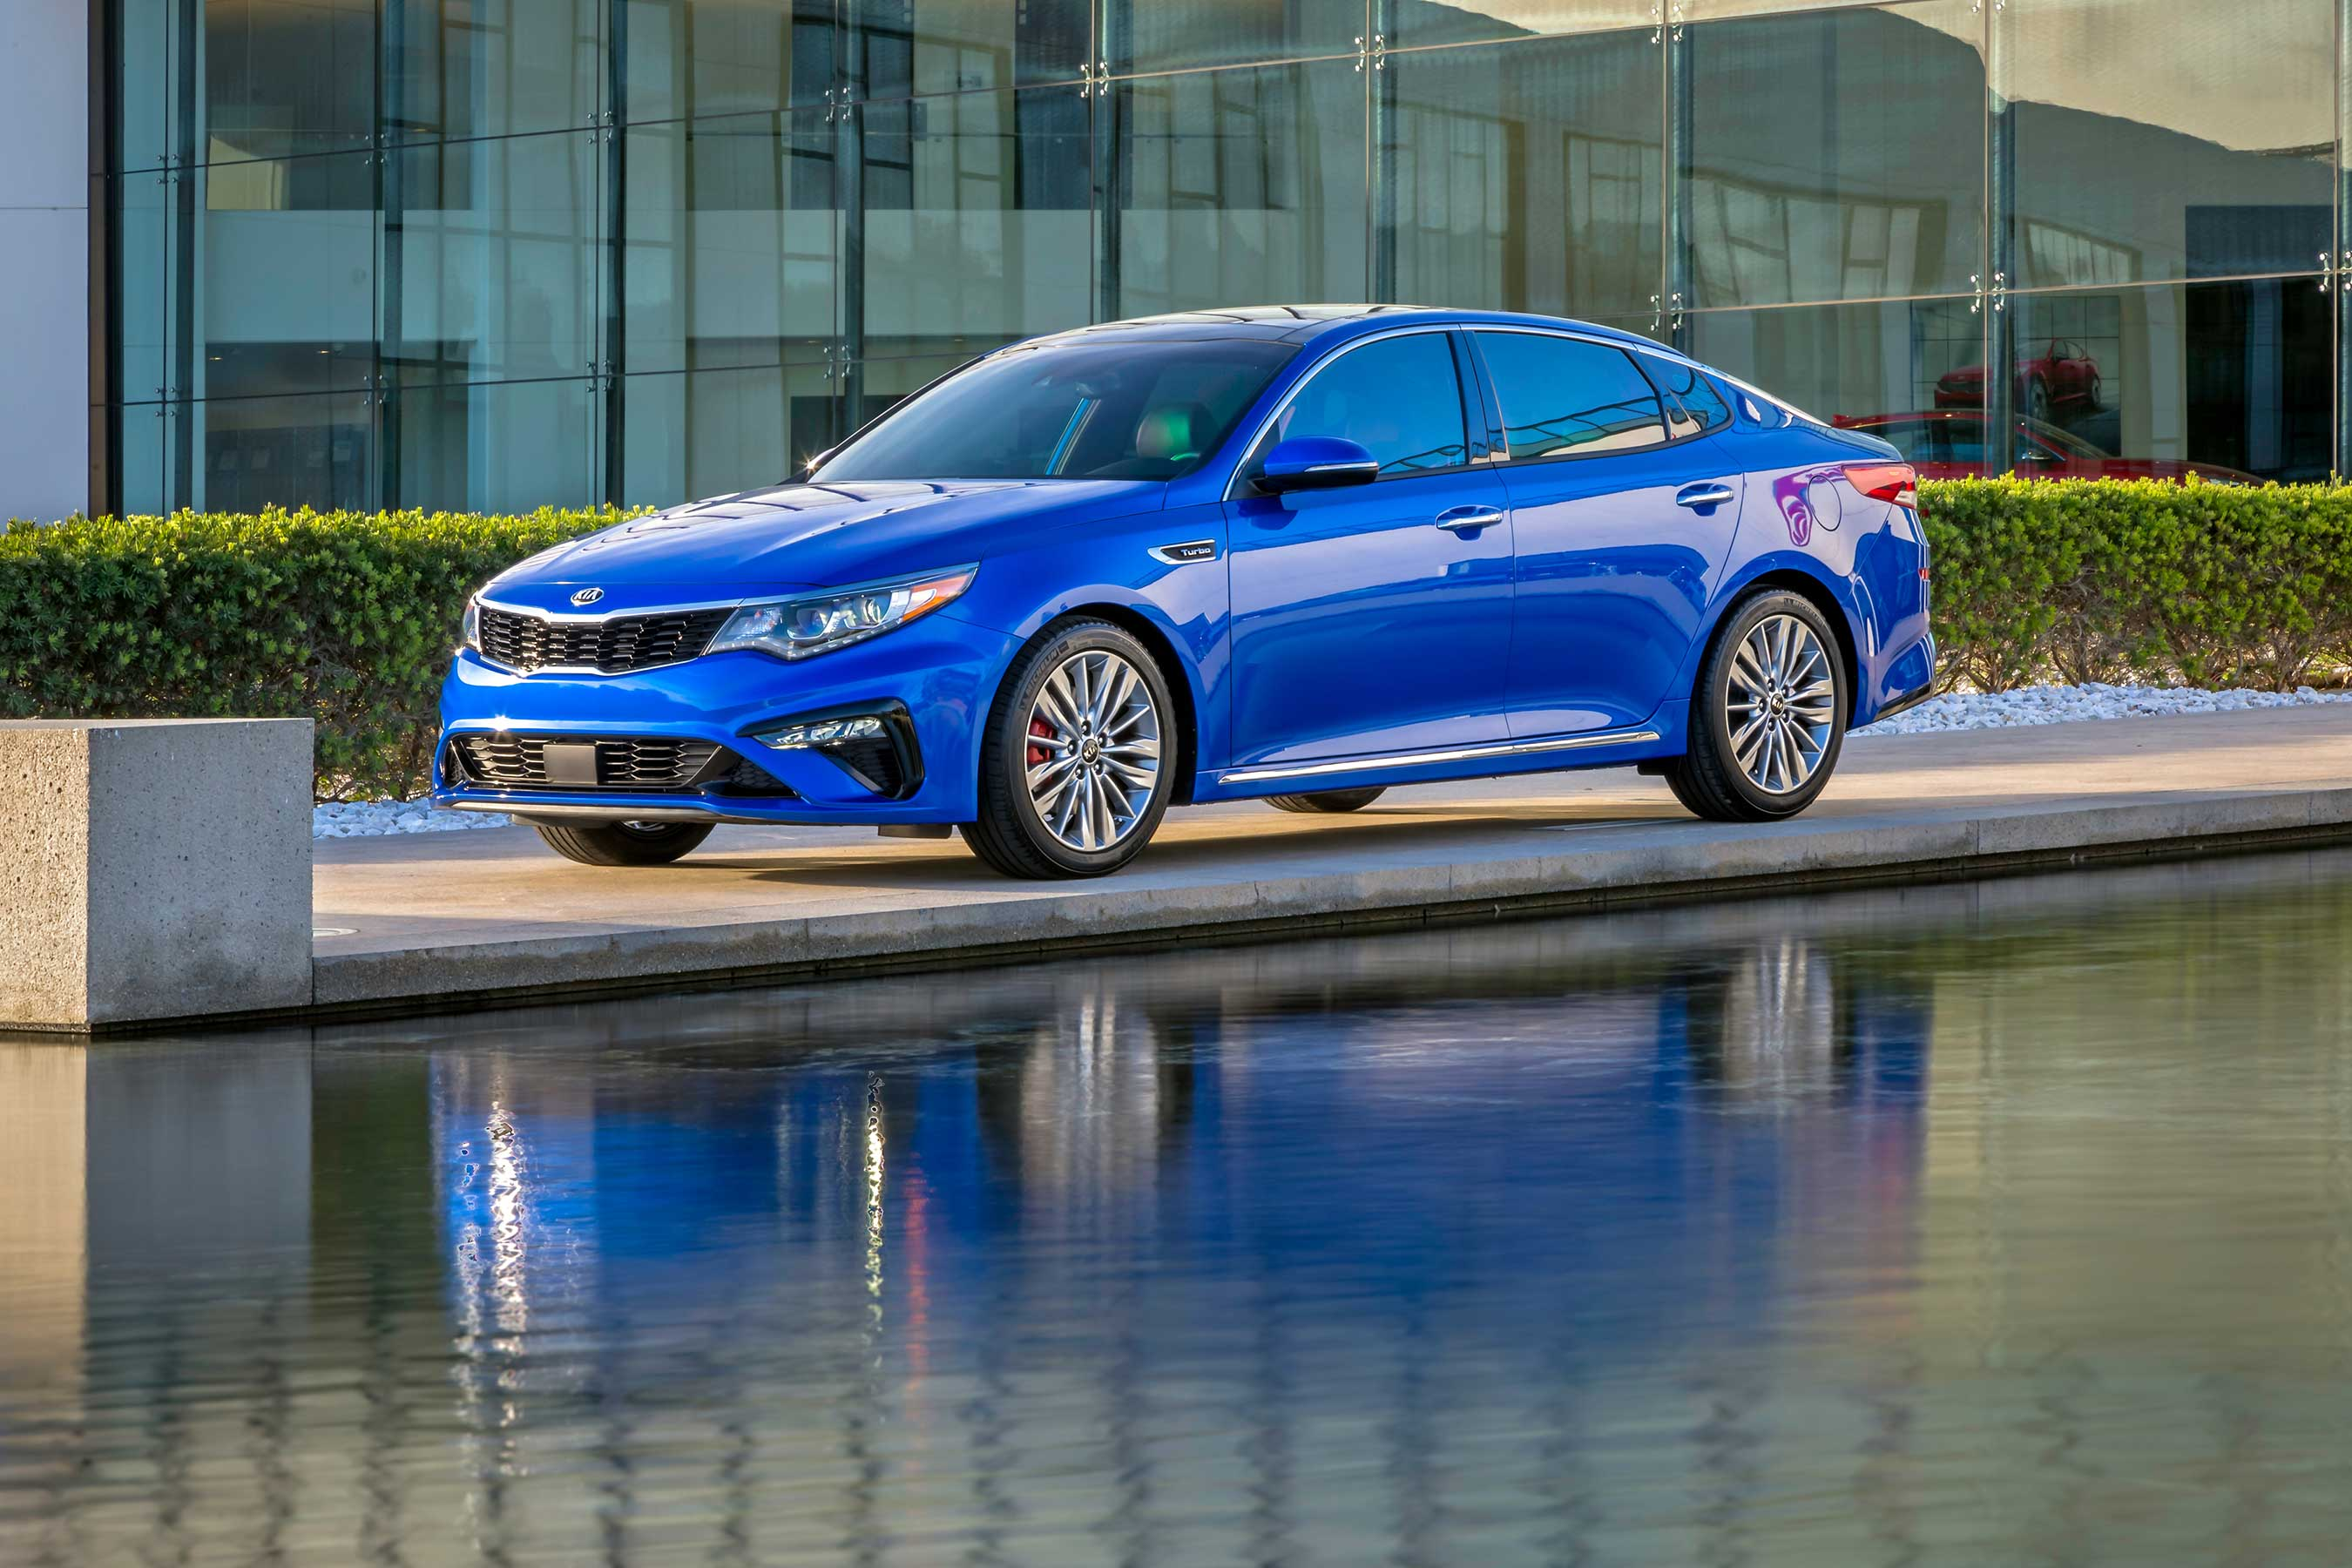 Proudly assembled in the U.S. at Kia Motors Manufacturing Georgia (KMMG) in West Point, Georgia, the 2019 Optima will arrive at Kia retailers later this year.